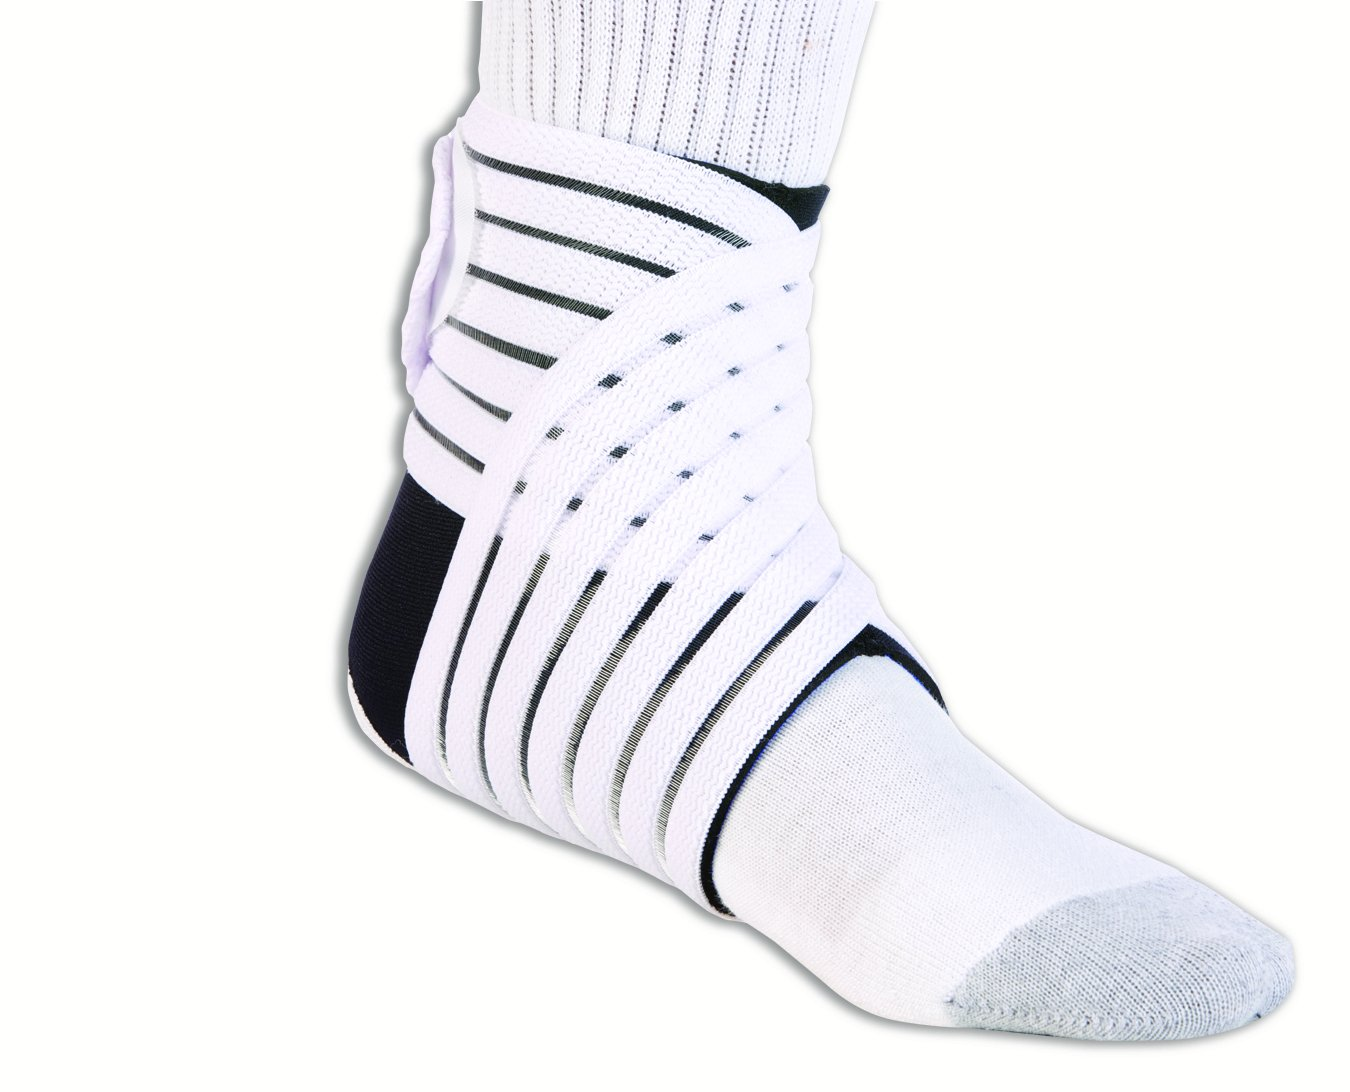 Pro-tec Athletics Ankle Wrap